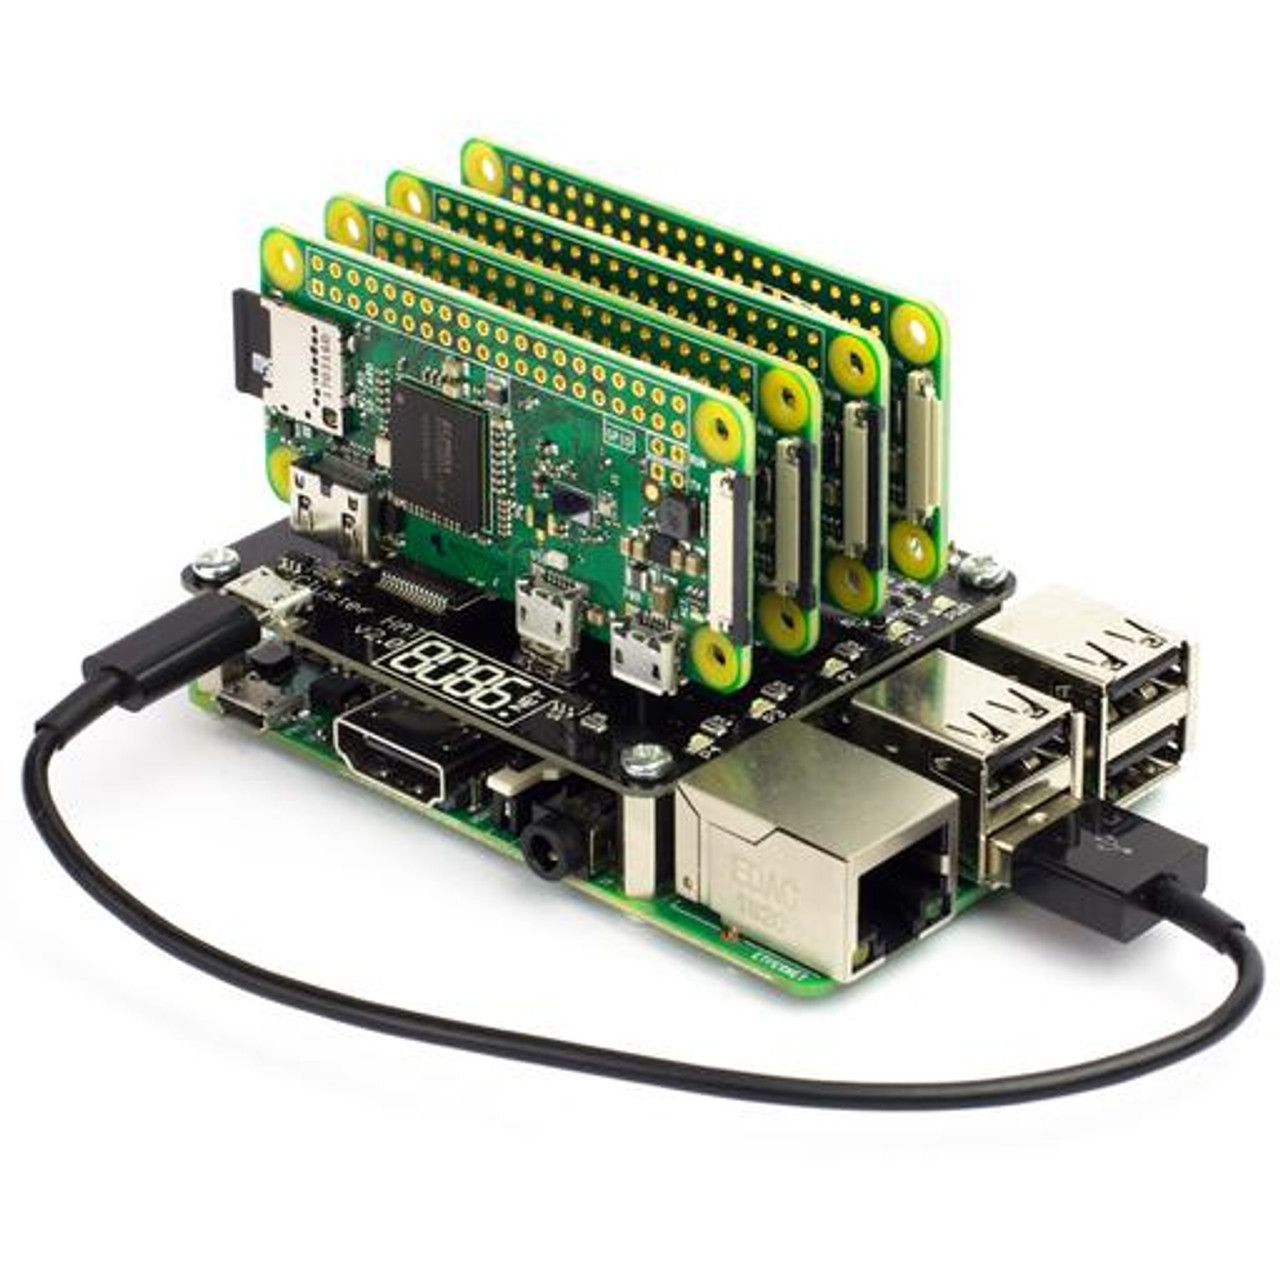 Cluster HAT Kit (includes 4 x Raspberry Pi Zero W)